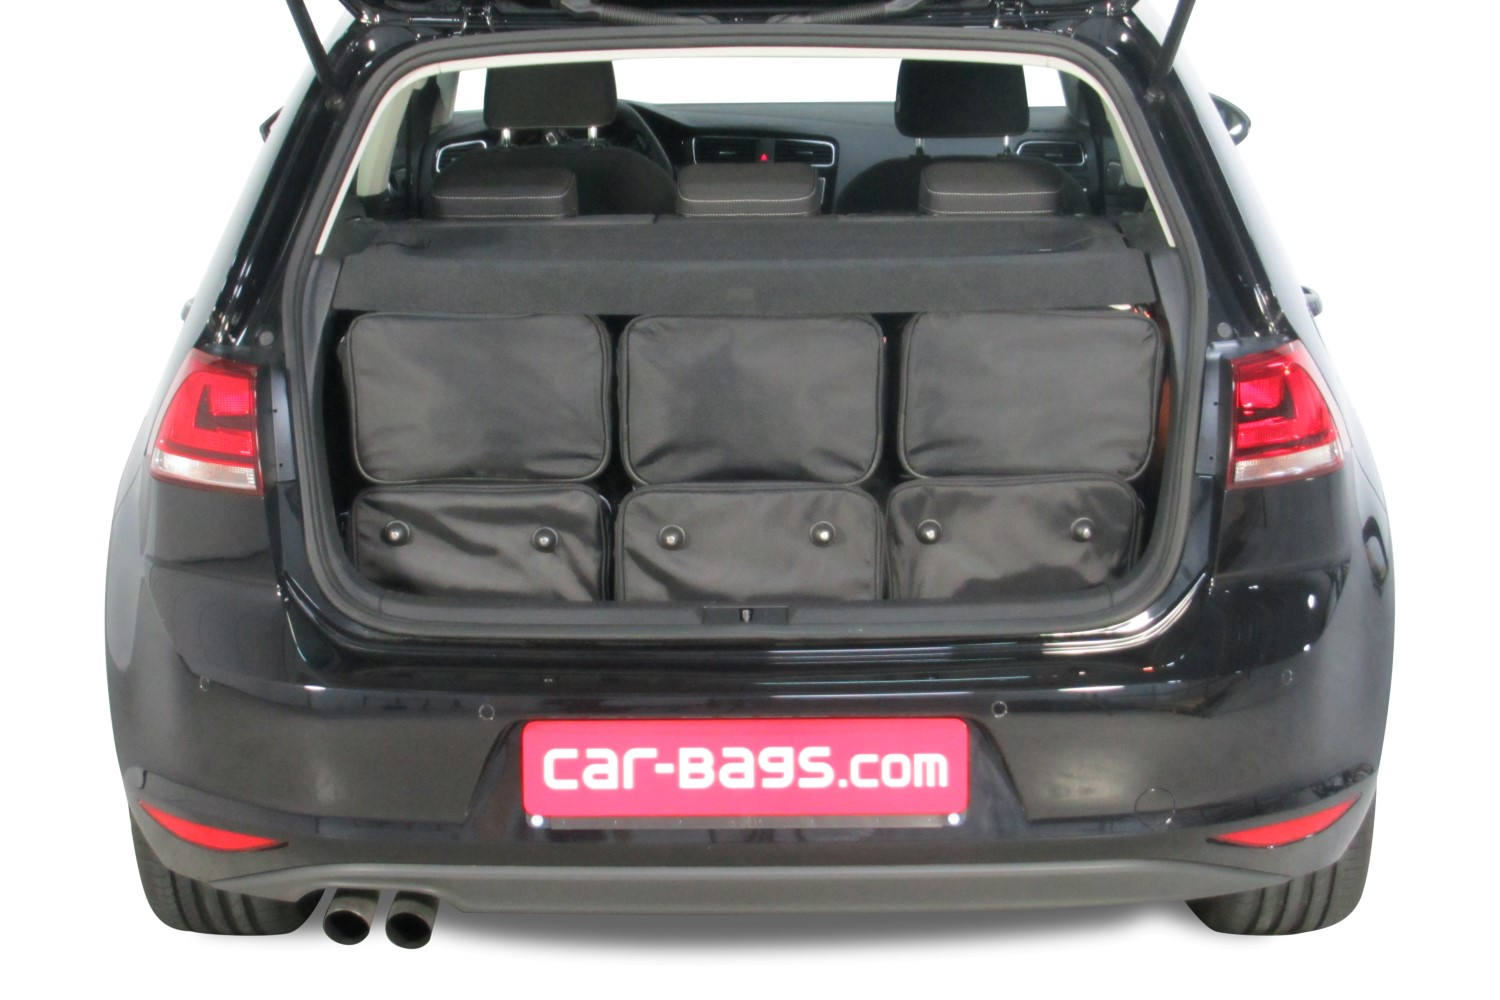 golf volkswagen golf vii 5g 2012 present 3 5d car bags. Black Bedroom Furniture Sets. Home Design Ideas